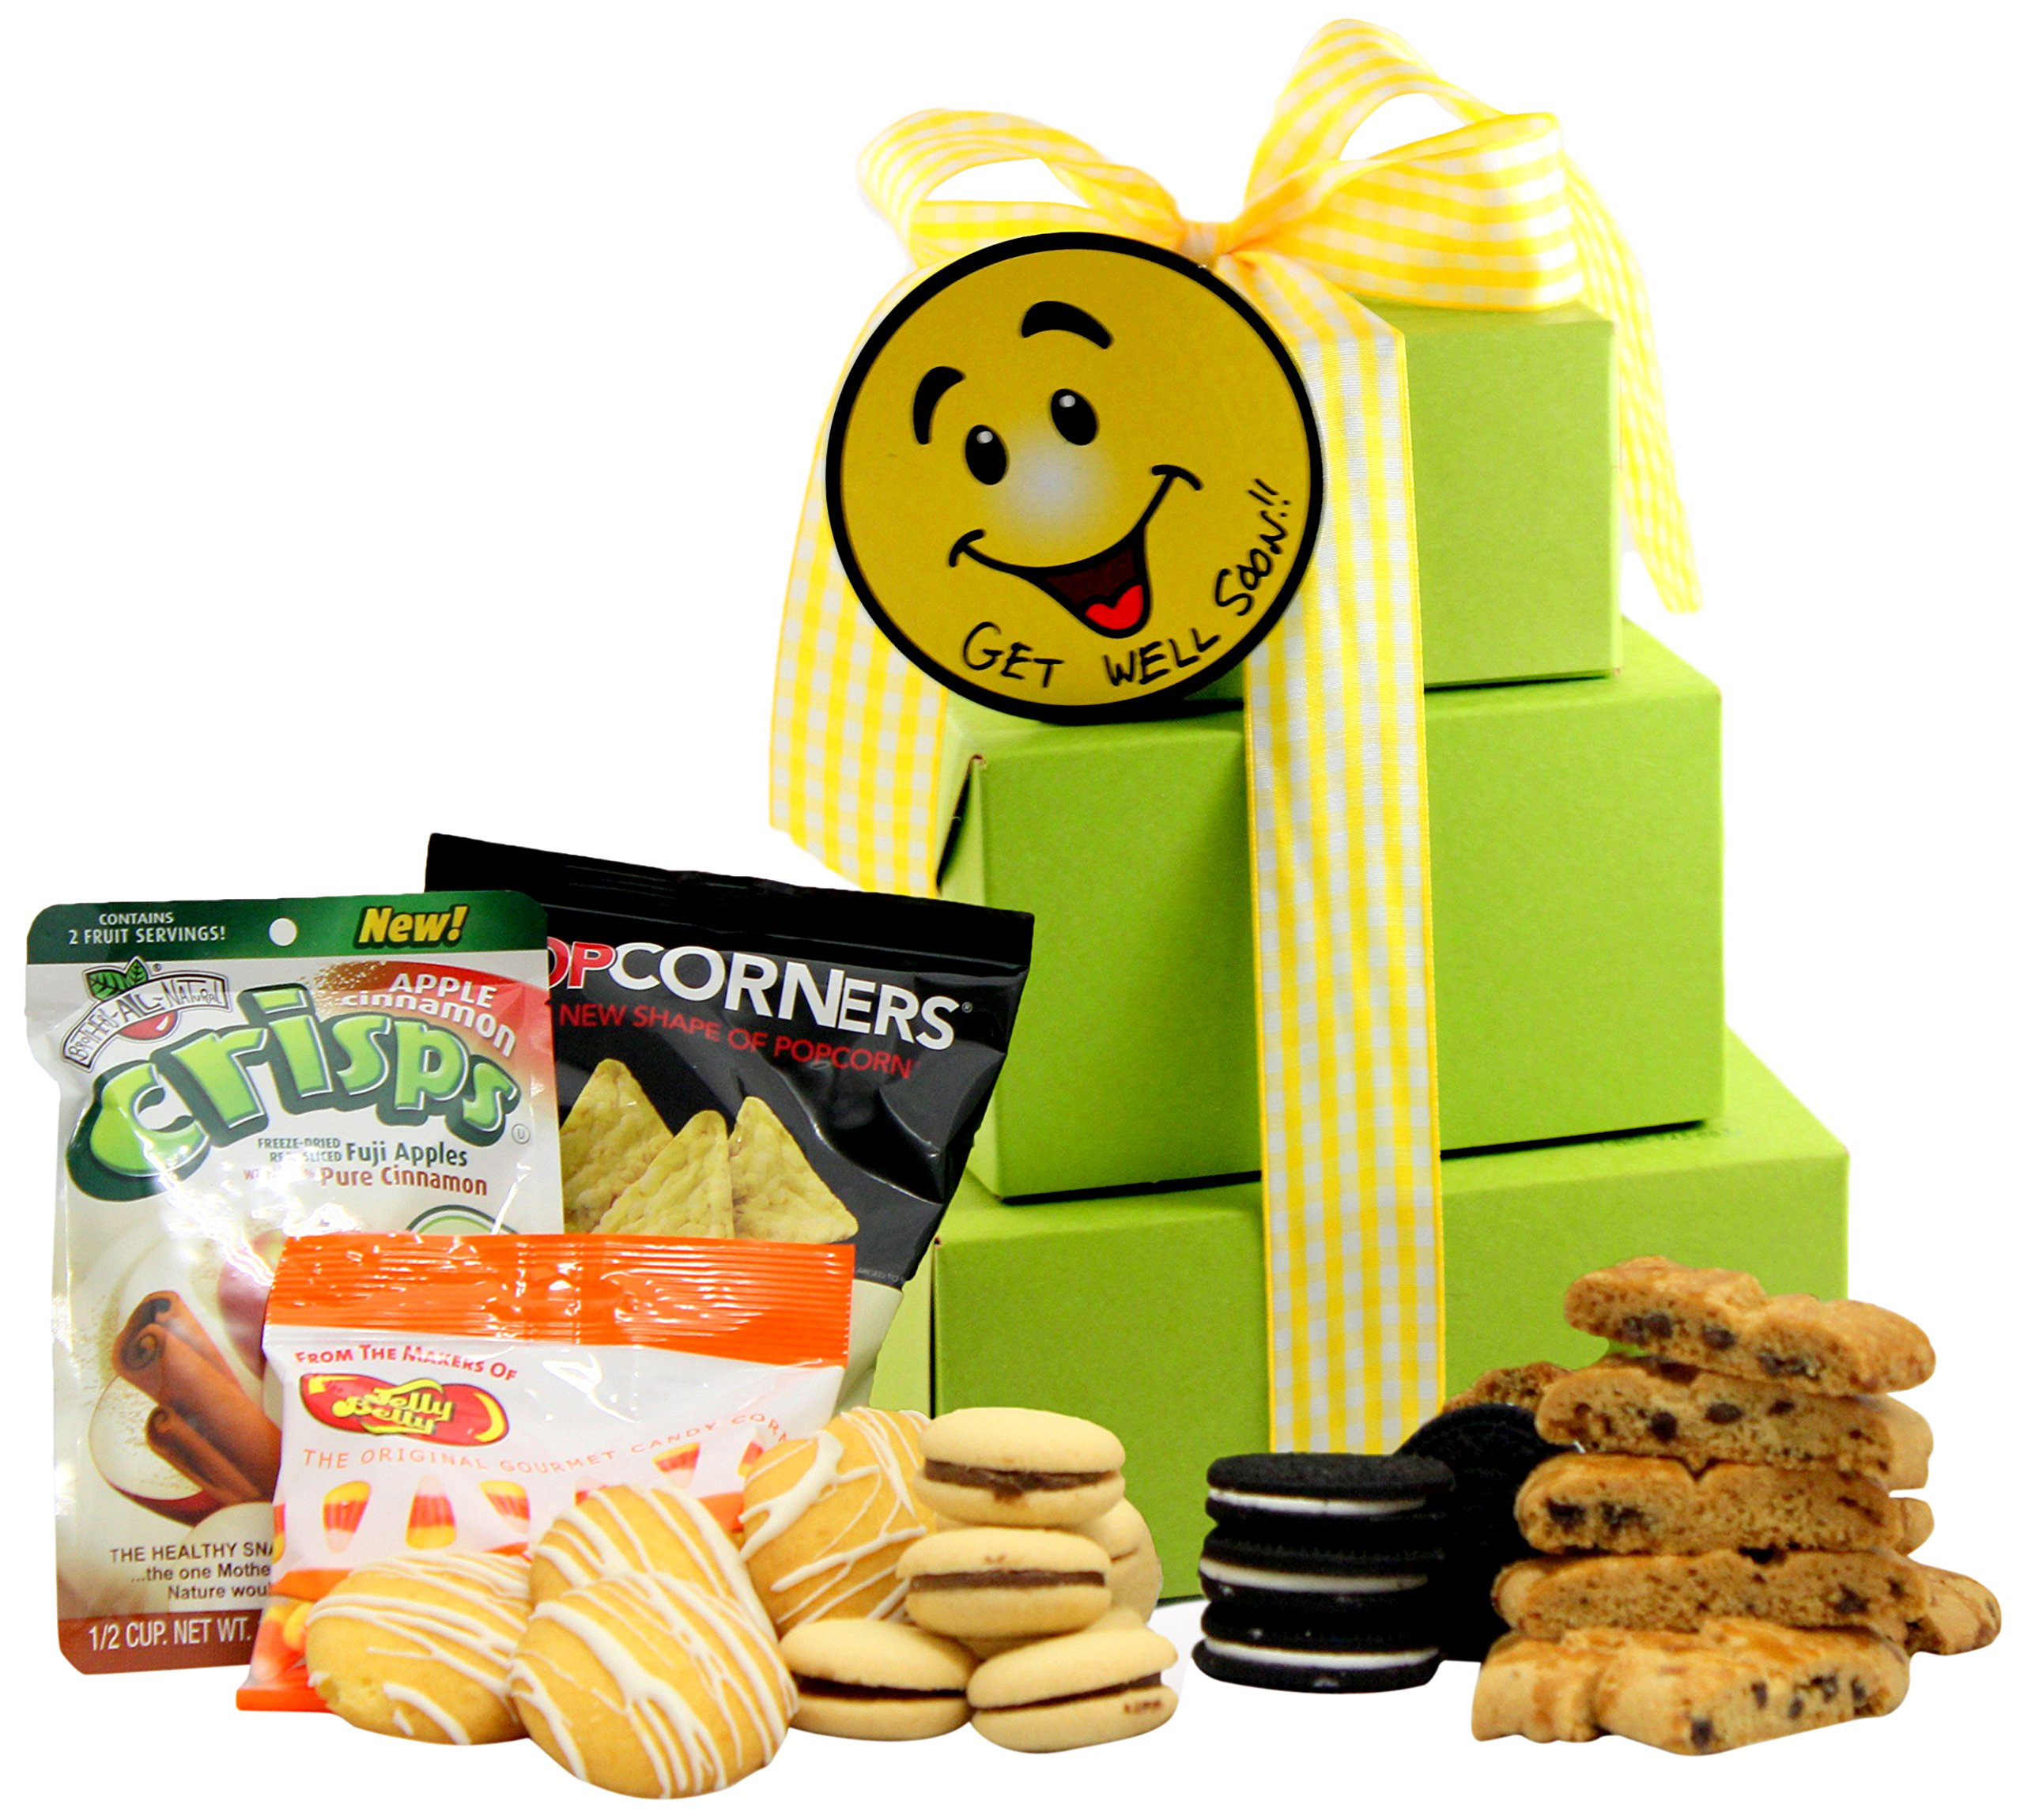 CDM product GlutenFreePalace.com Large-Palace Smiles and Cheer, Get Well Gift Tower, 2-Pound, Large small thumbnail image